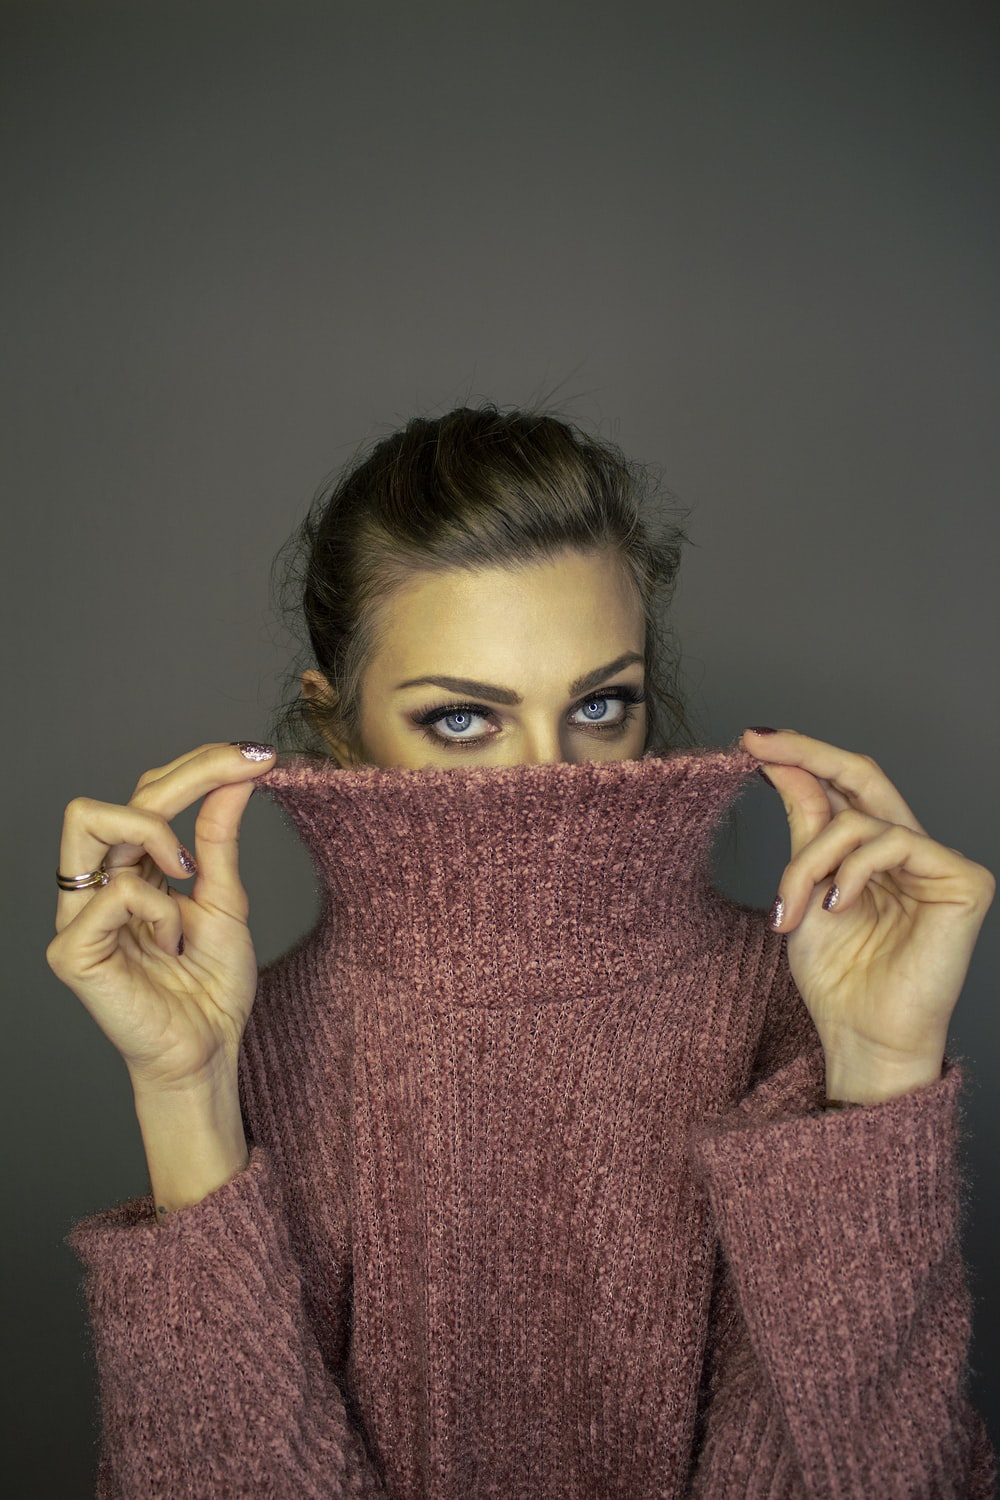 woman in pink turtleneck sweater